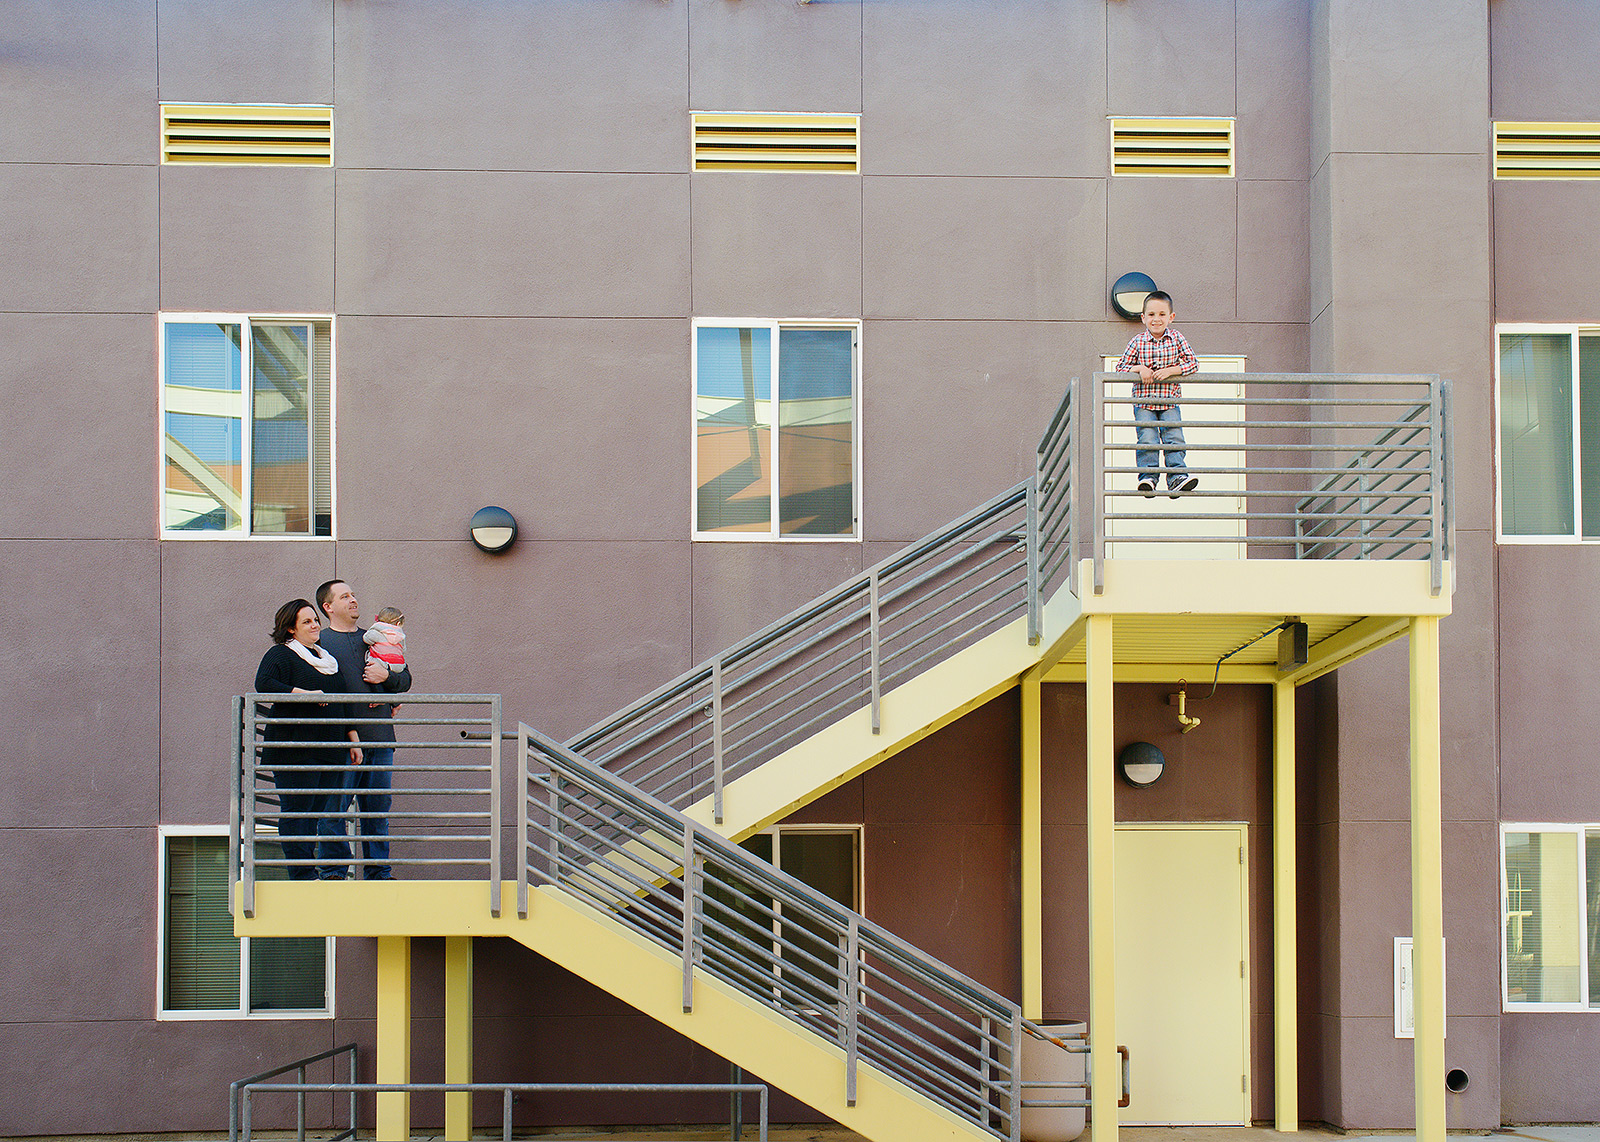 Modern Family Photo on Stairway in Modern Industrial Building for this Sacramento Photographer